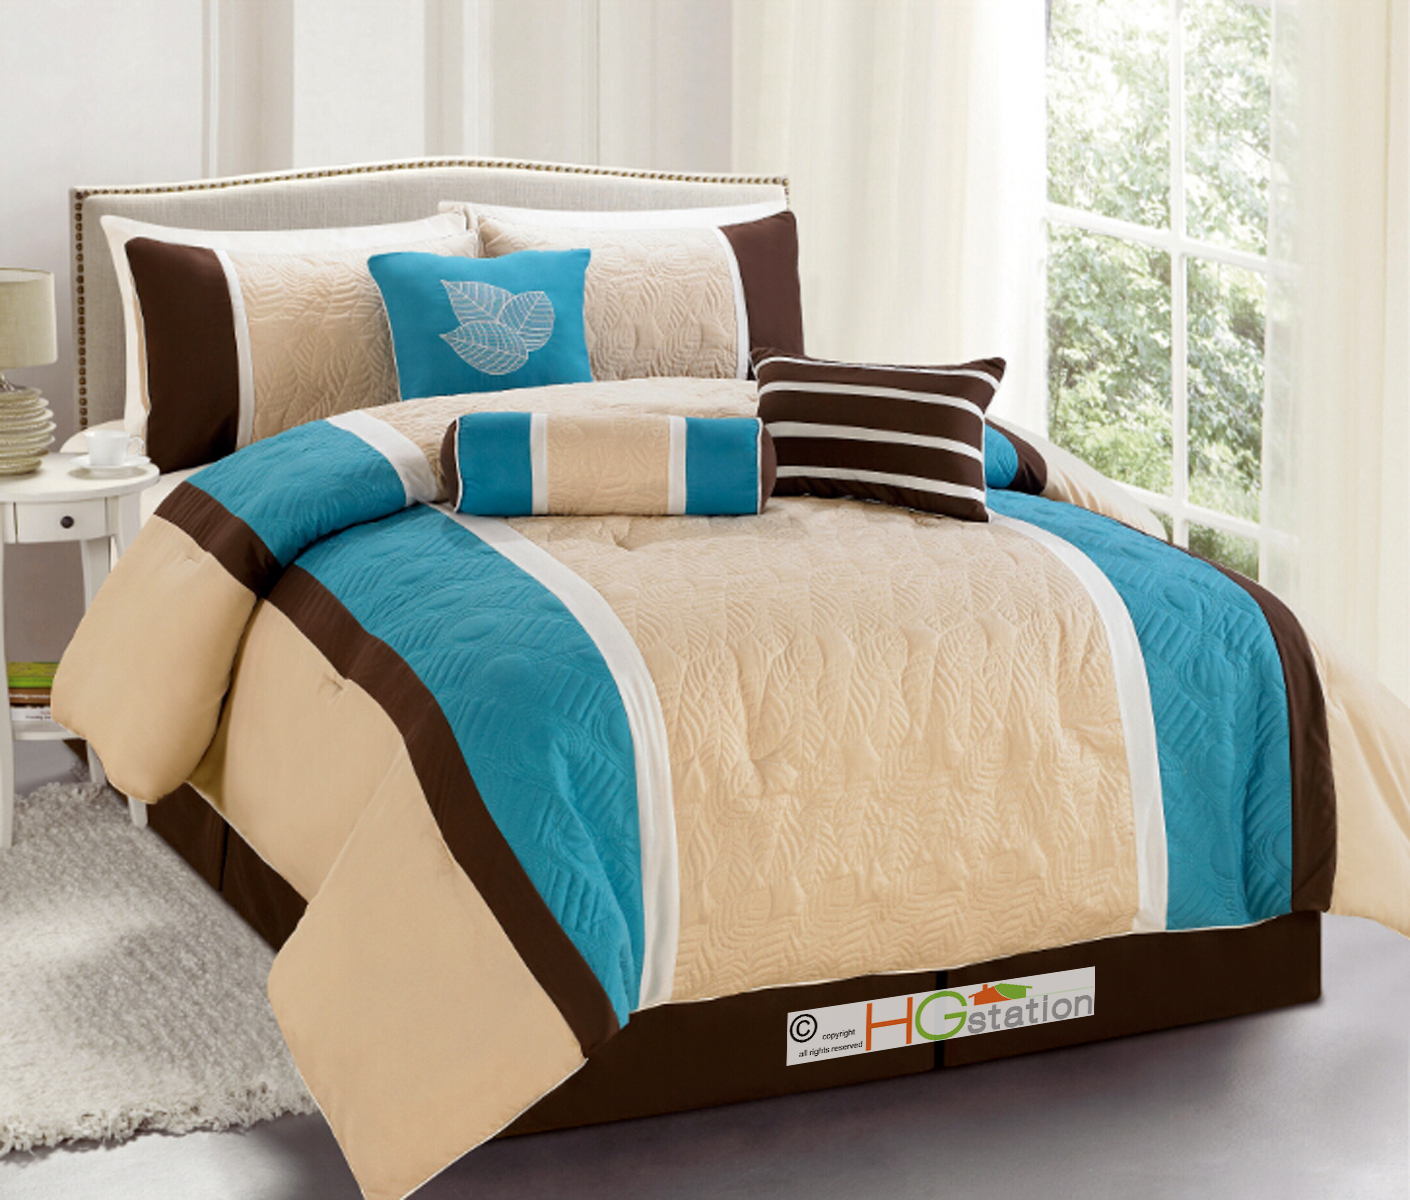 Bedroom Decor Turquoise And Brown Bedroom Ideas Nature Bedroom Sets Uk Bedroom Sets With Mattress